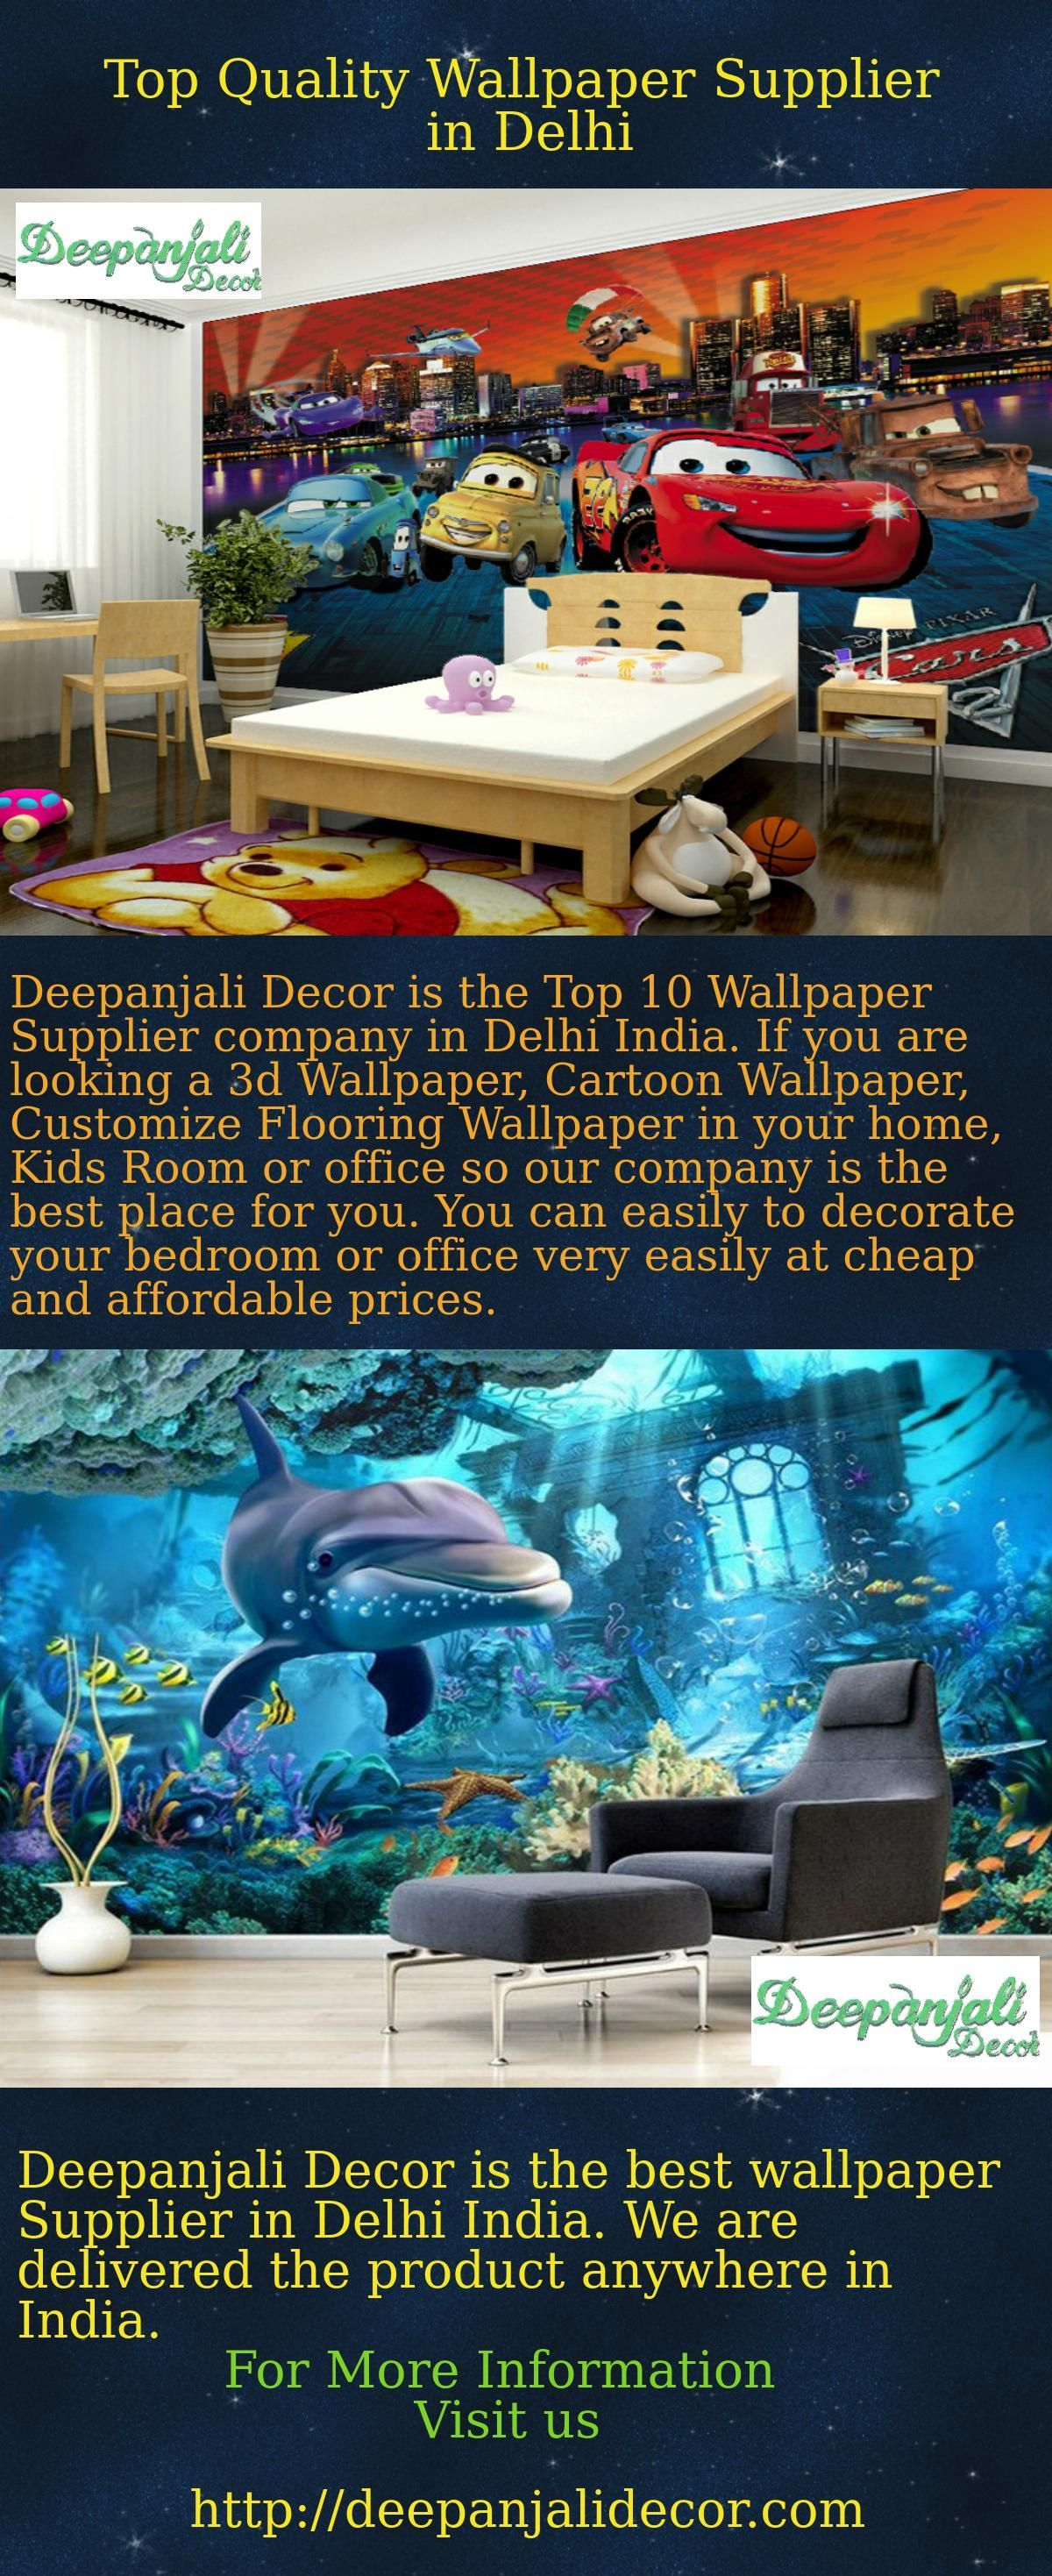 Deepanjali Decor Is The Top Quality Wallpaper Supplier In Delhi It Provides Best Designer